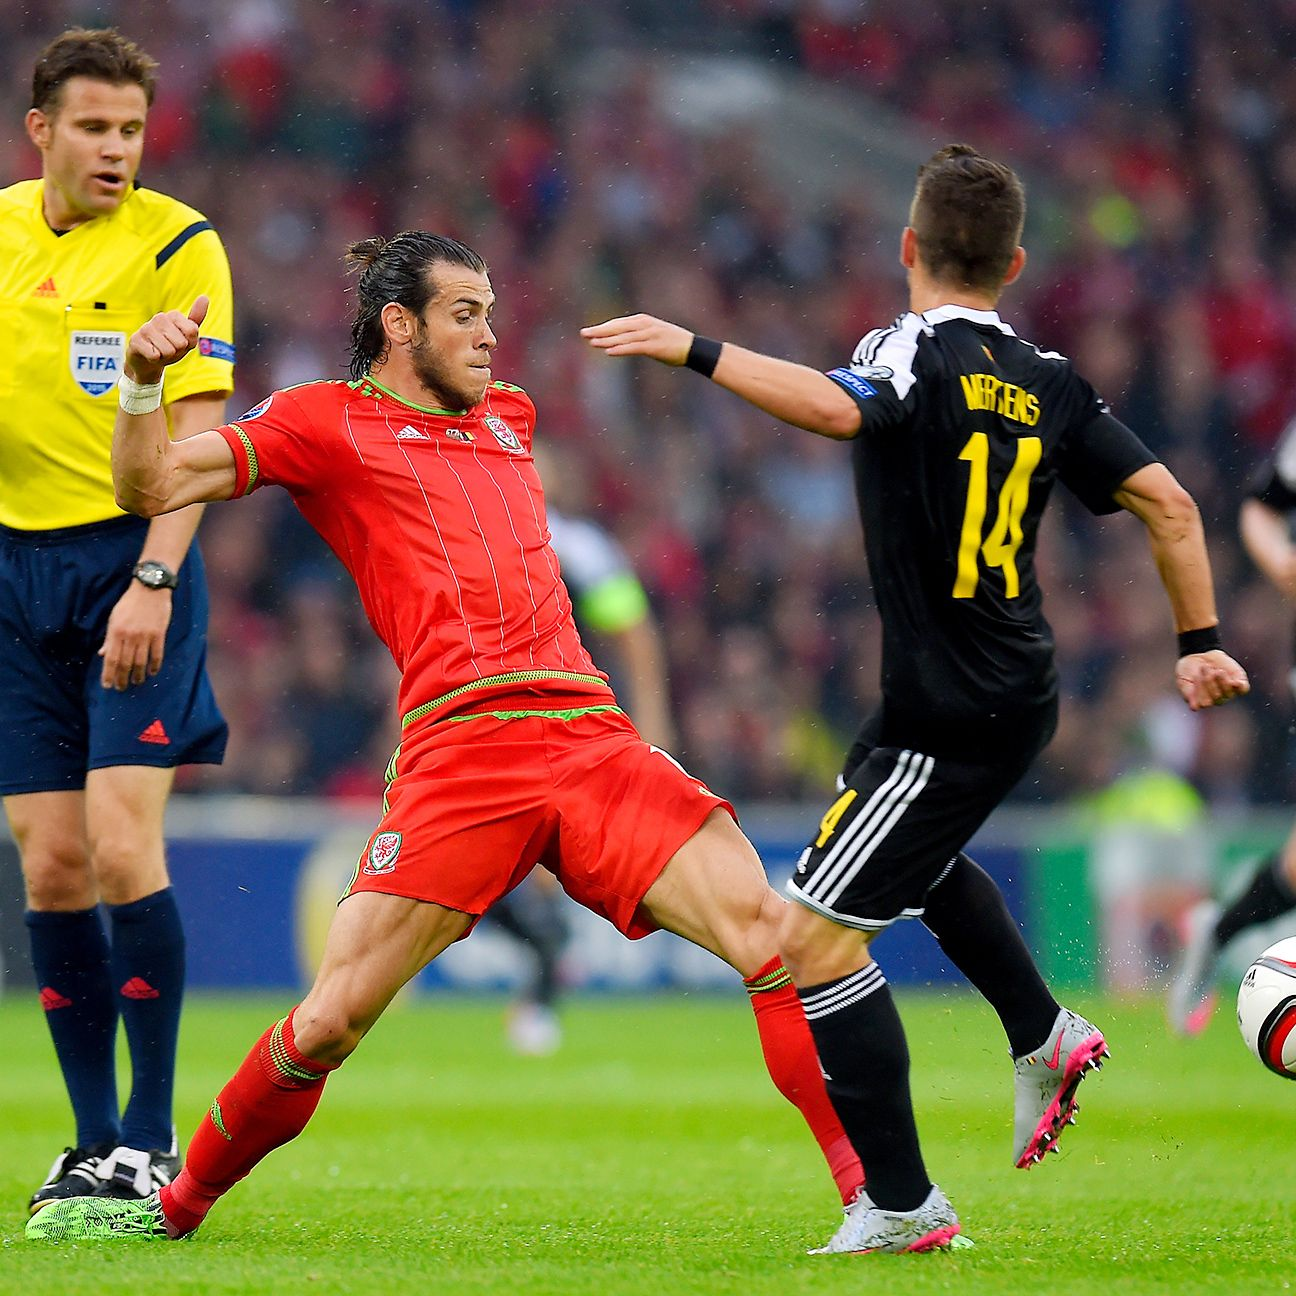 Gareth Bale and Wales are now in the Euro 2016 driver's seat after their key Group B win over Belgium.